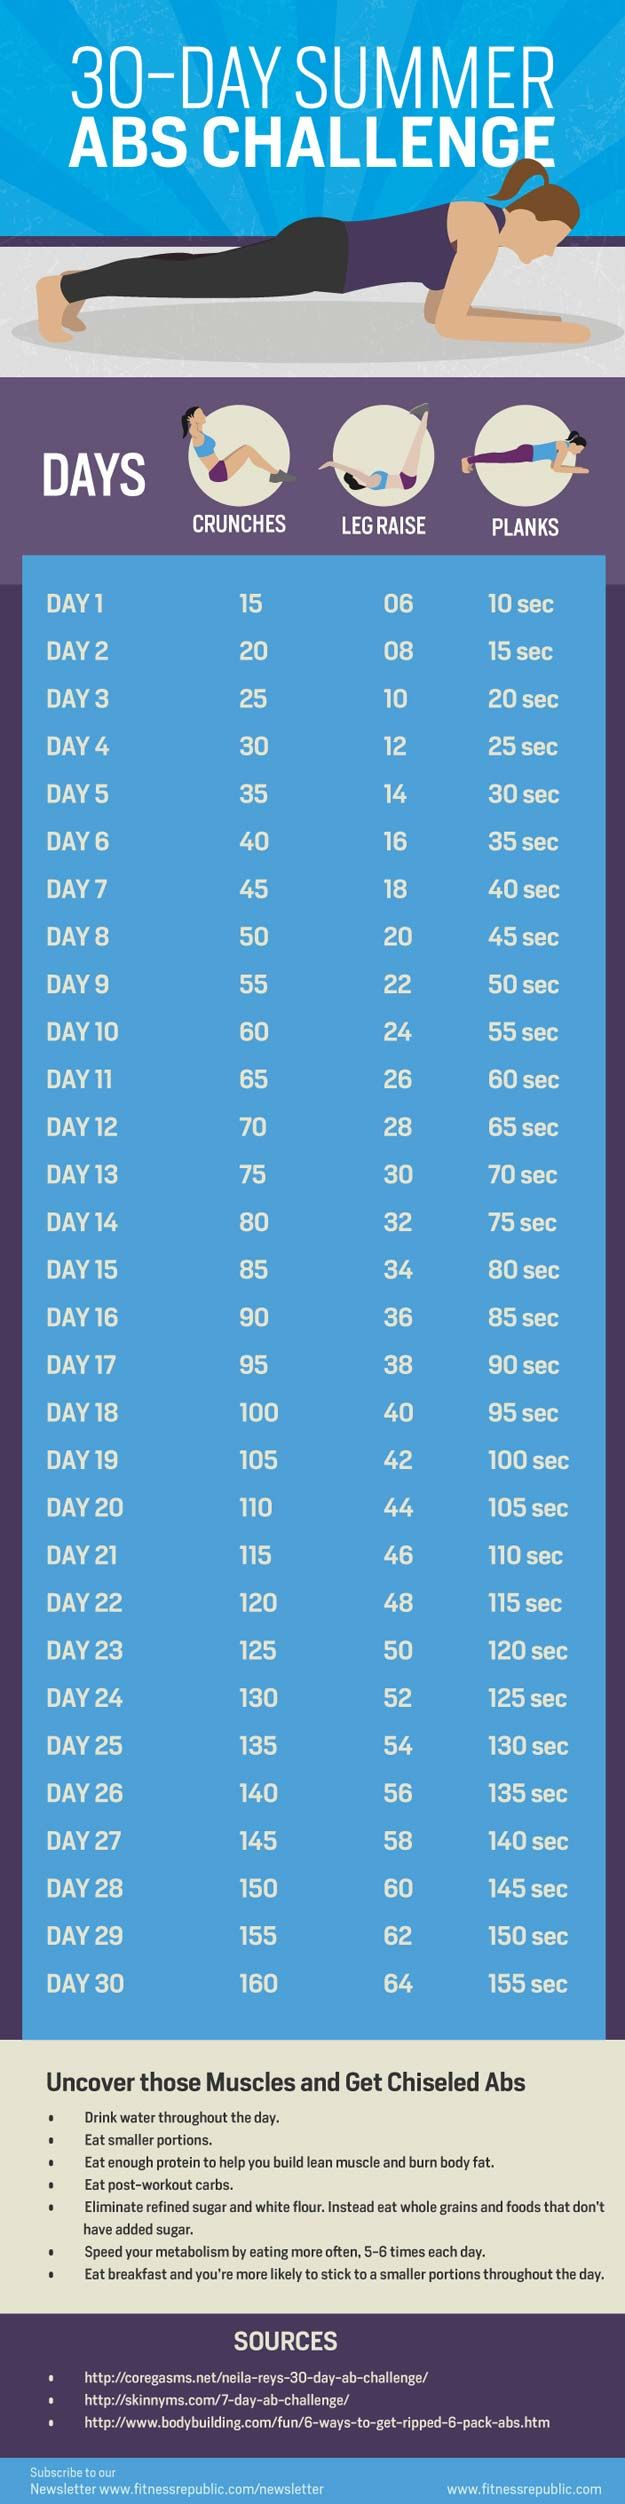 Best Exercises for Abs - 30-Day Summer Abs Challenge - Best Ab Exercises And Ab Workouts For A Flat Stomach, Increased Health Fitness, And Weightless. Ab Exercises For Women, For Men, And For Kids. Great With A Diet To Help With Losing Weight From The Low http://amzn.to/2sp7uCw